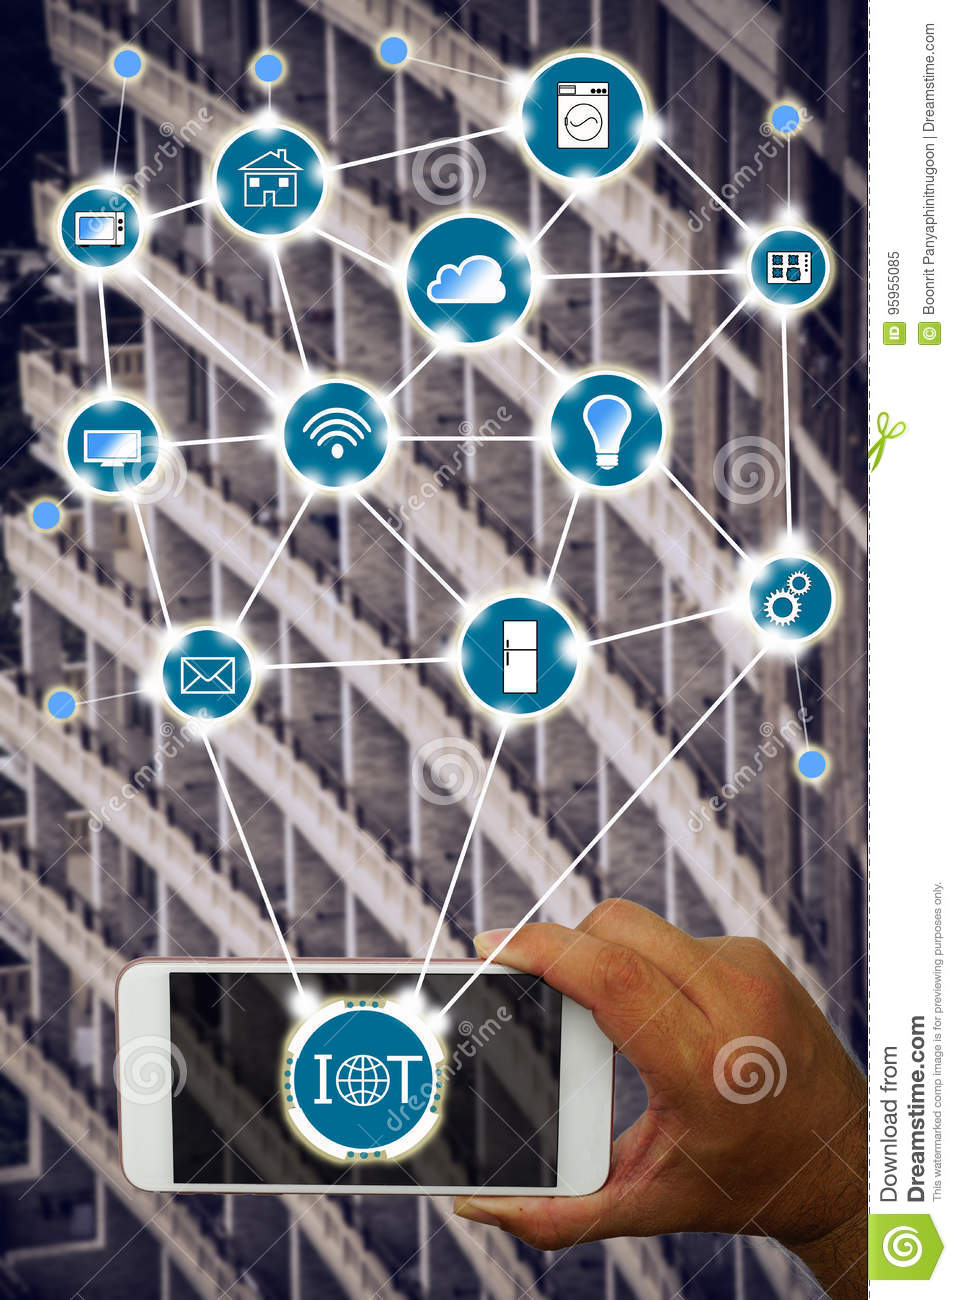 Internet of things IOT concept